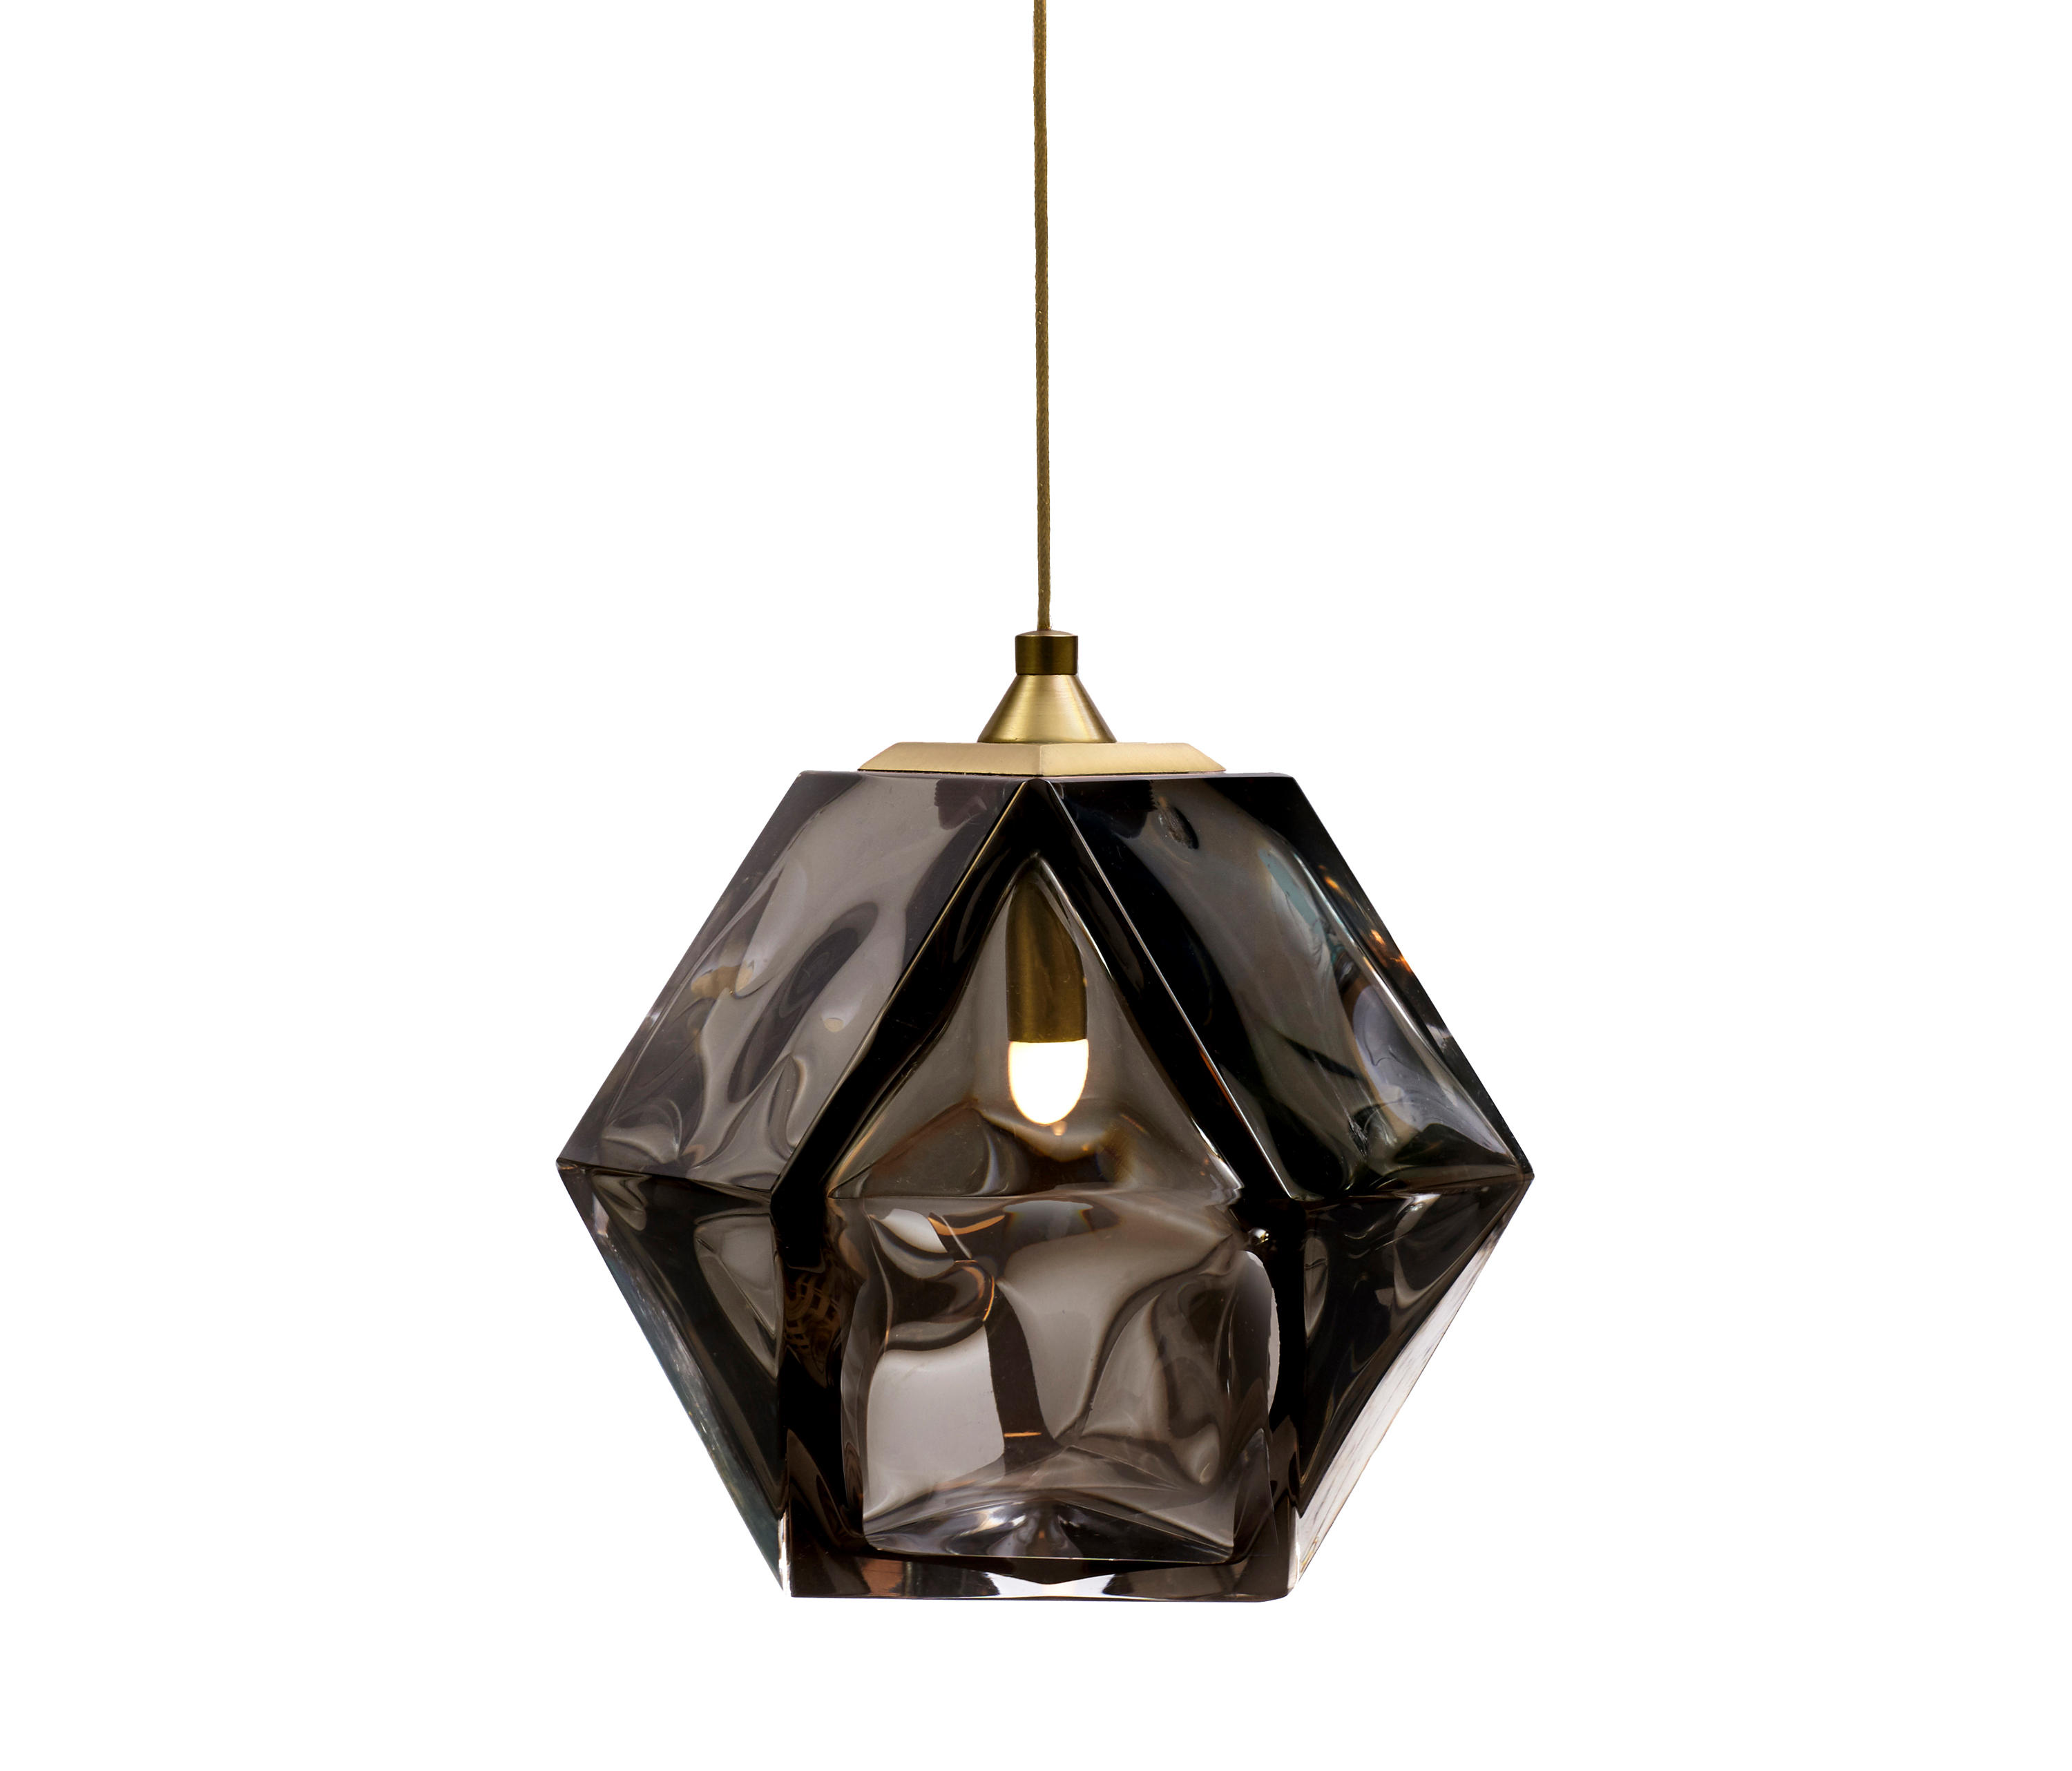 fixtures lighting niche pendant lights glass modern ideas full best light room size blown